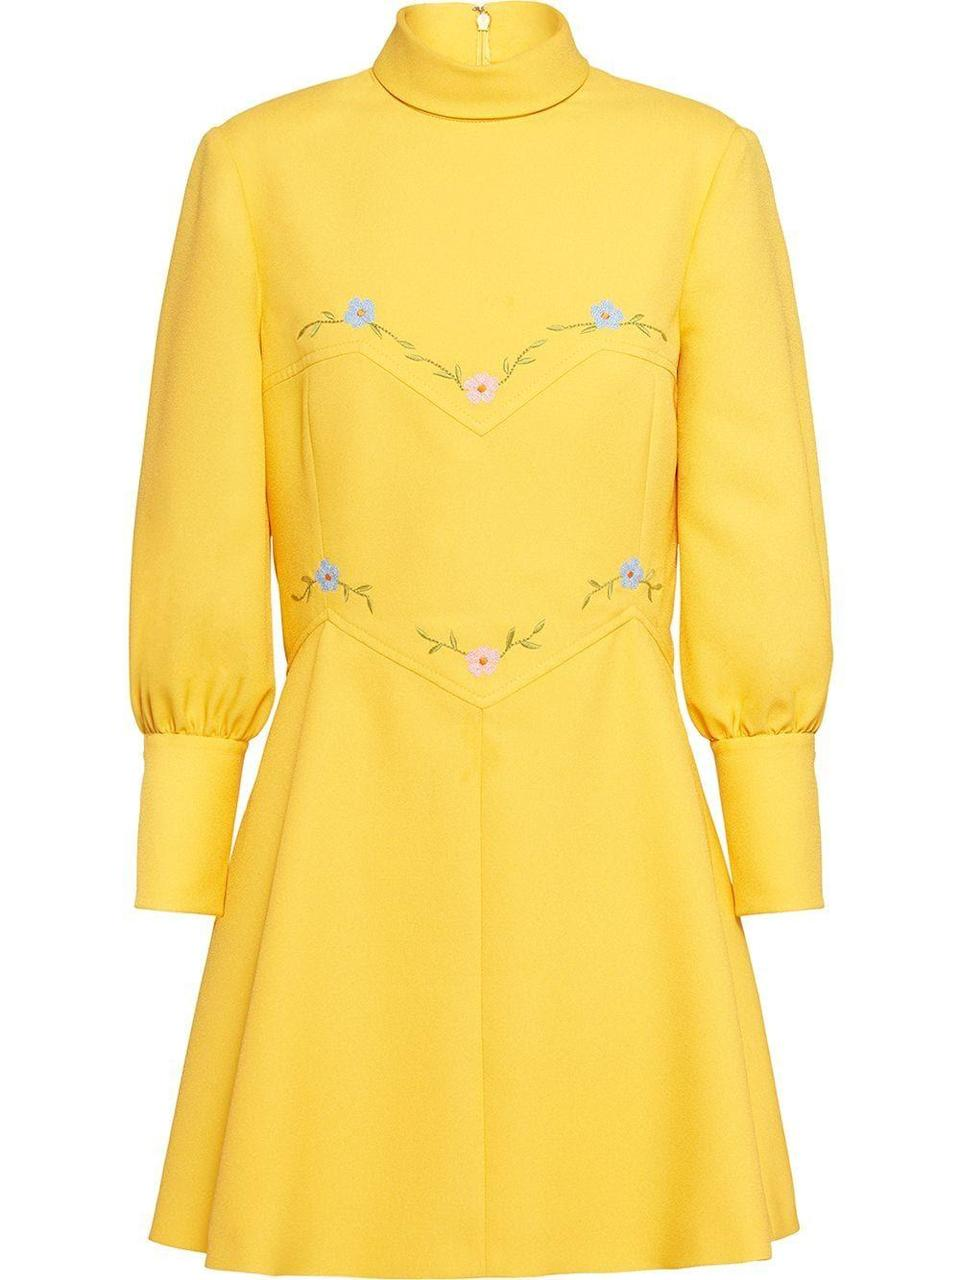 "<p>Dress, £1,340, Miu Miu </p><p><a class=""link rapid-noclick-resp"" href=""https://www.miumiu.com/gb/en/products.technical_sable_dress.MF3524_1V7B_F0010.html"" rel=""nofollow noopener"" target=""_blank"" data-ylk=""slk:SHOP NOW"">SHOP NOW</a></p>"